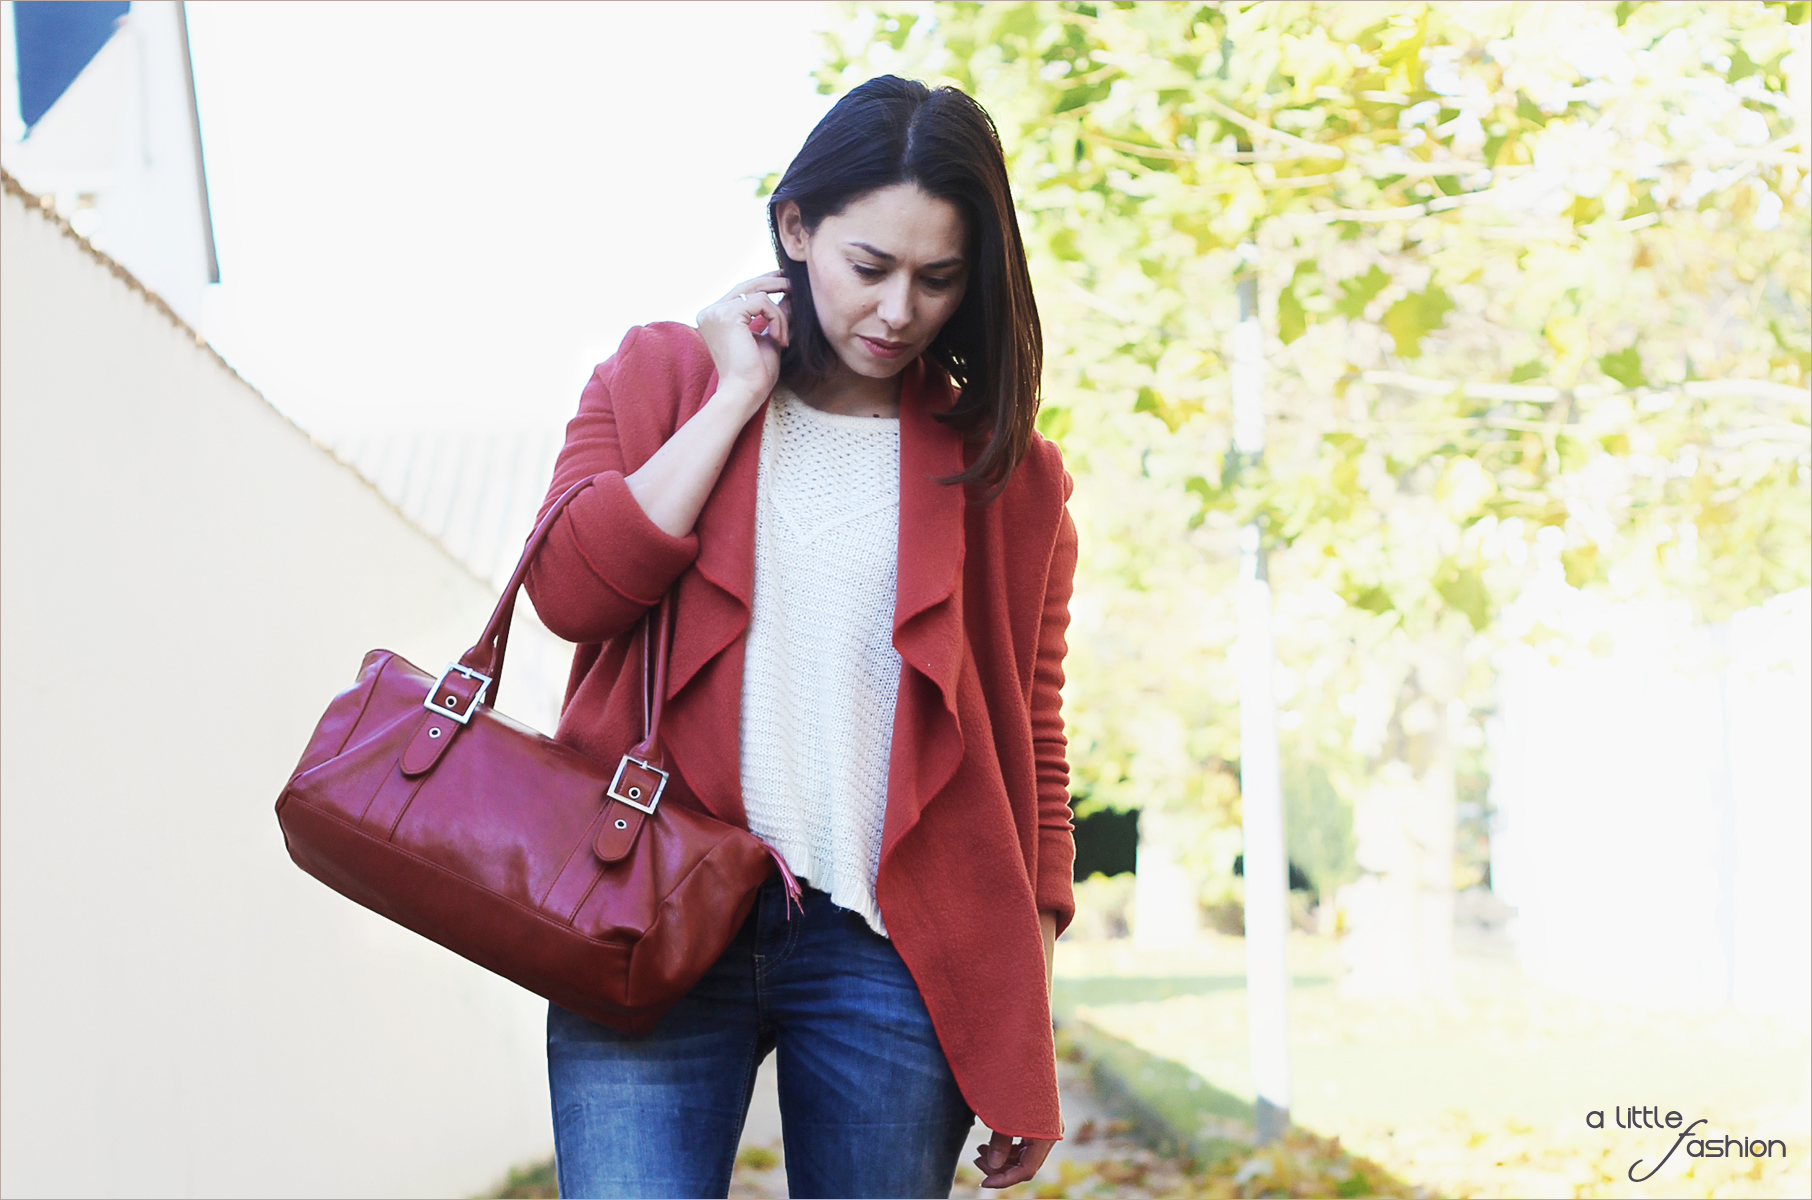 Ein letztes Herbst-Outfit